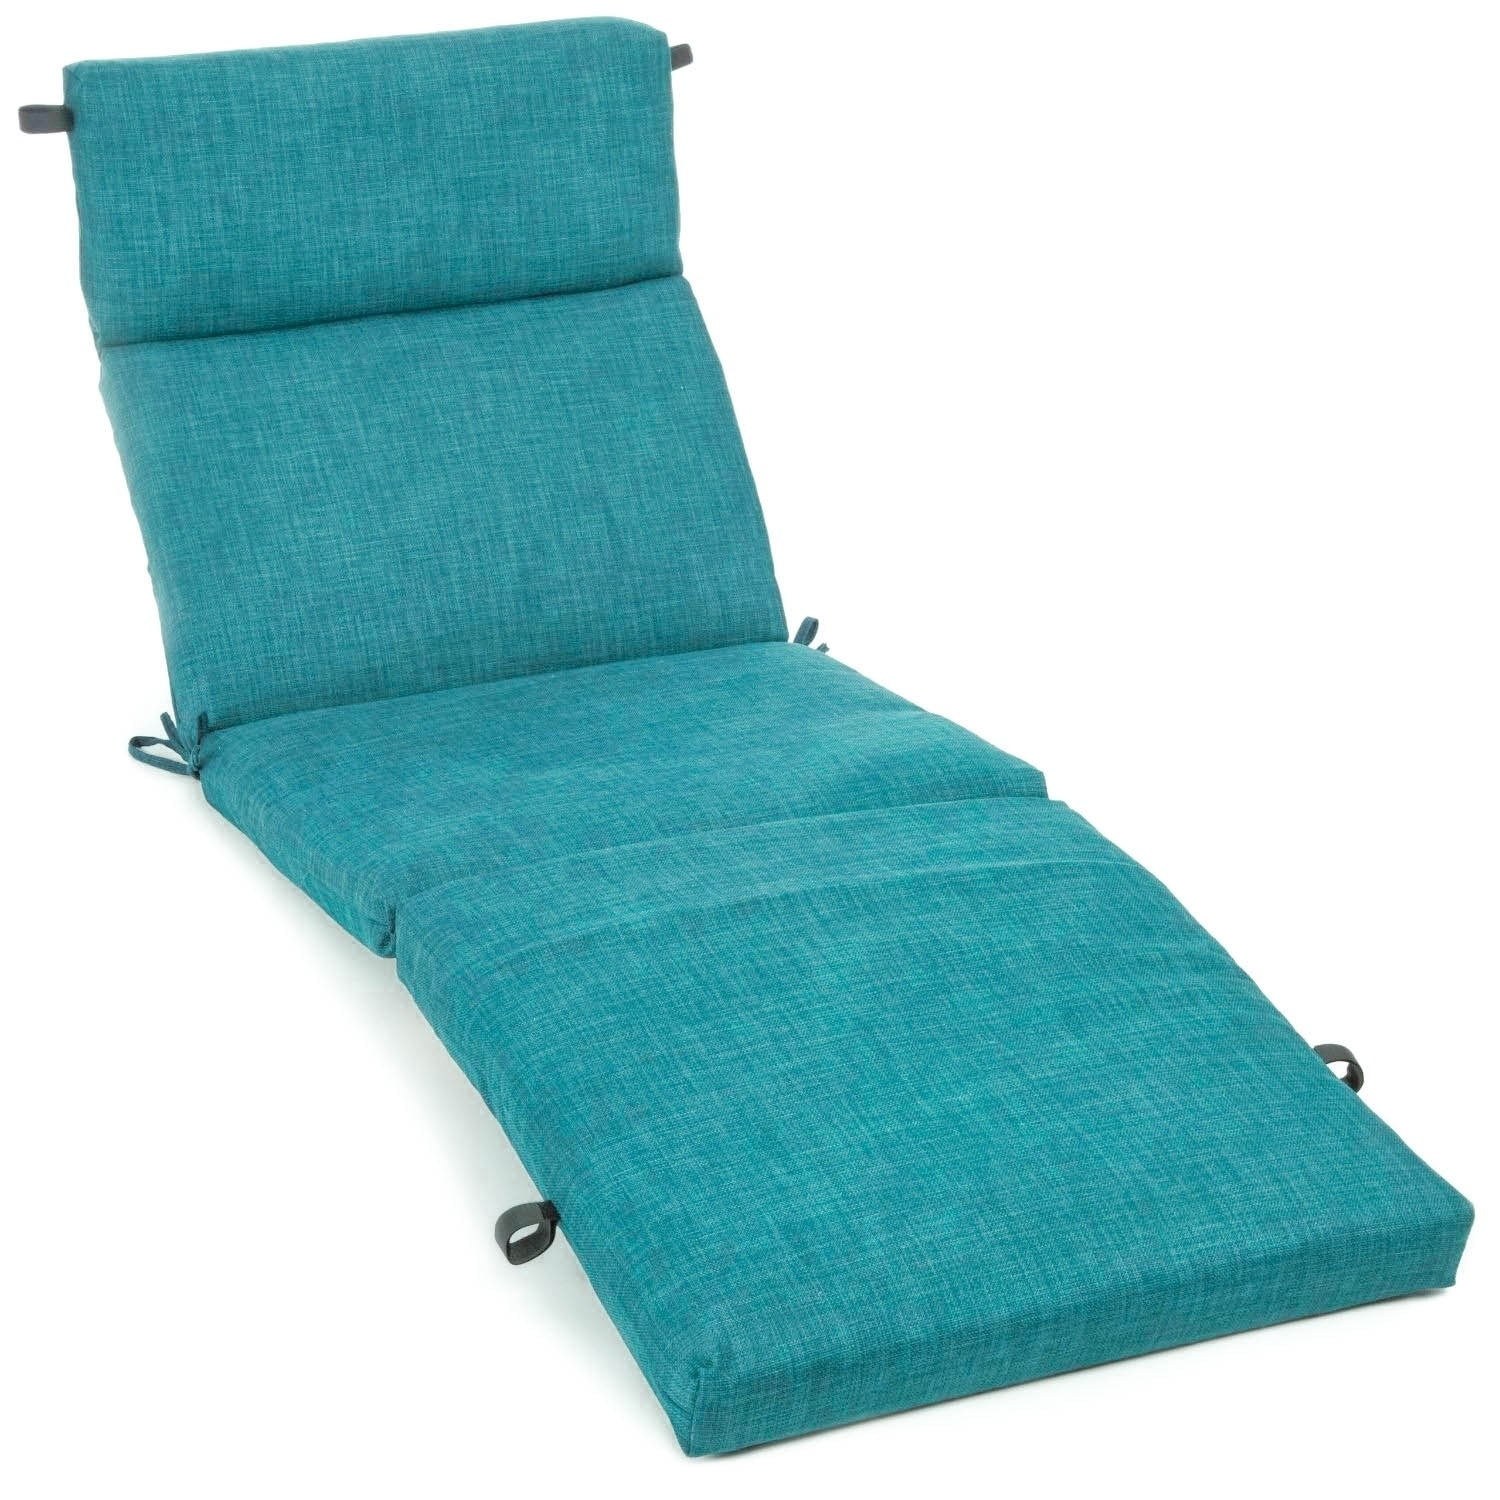 Blazing Needles 72-inch All-Weather Chaise Lounge Cushion (Cool Grey)